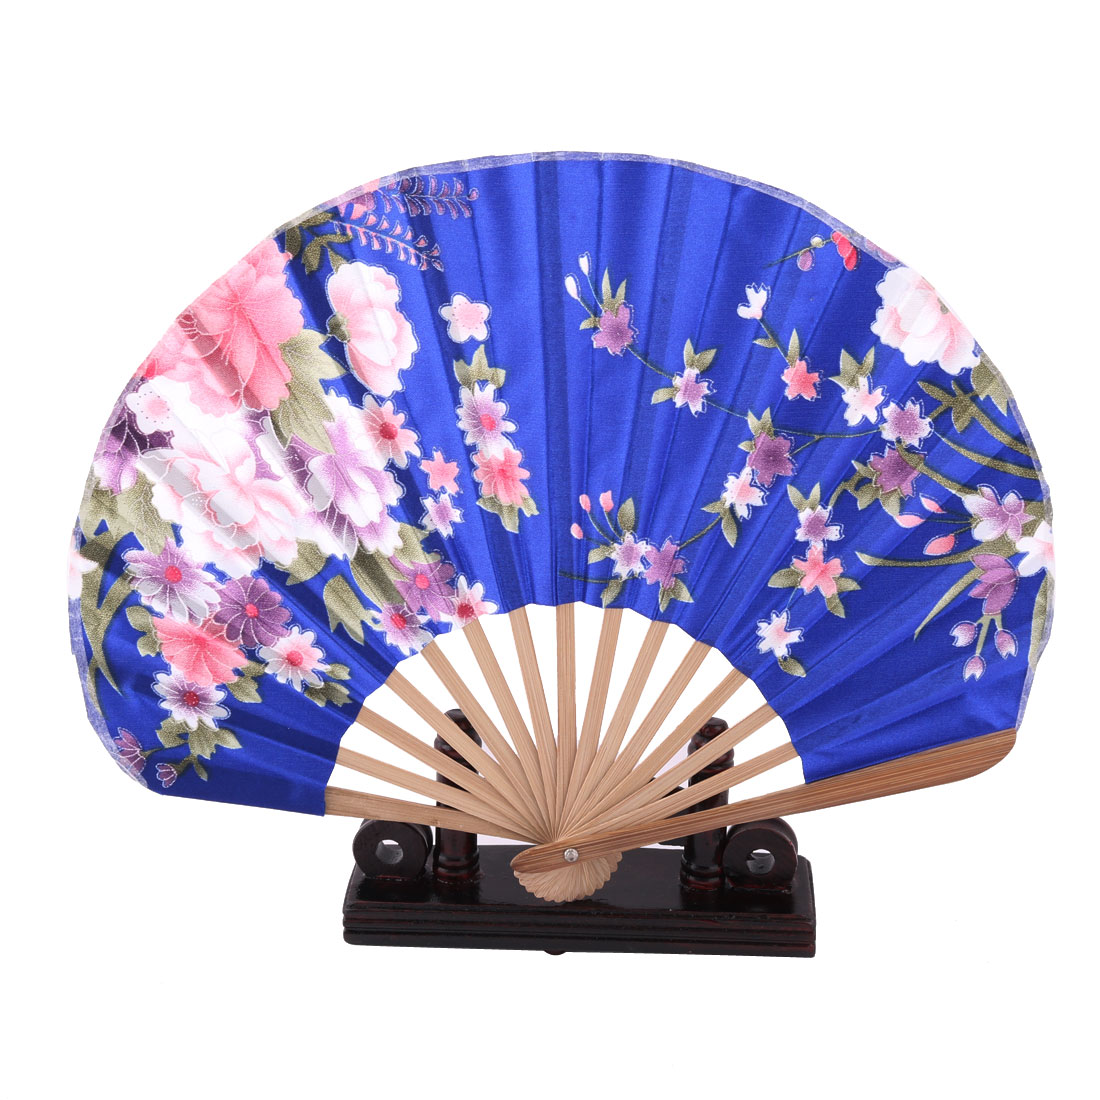 Home Wood Flower Print Chinese Style Handheld Folding Fan Display Holder Royal Blue 2 in 1